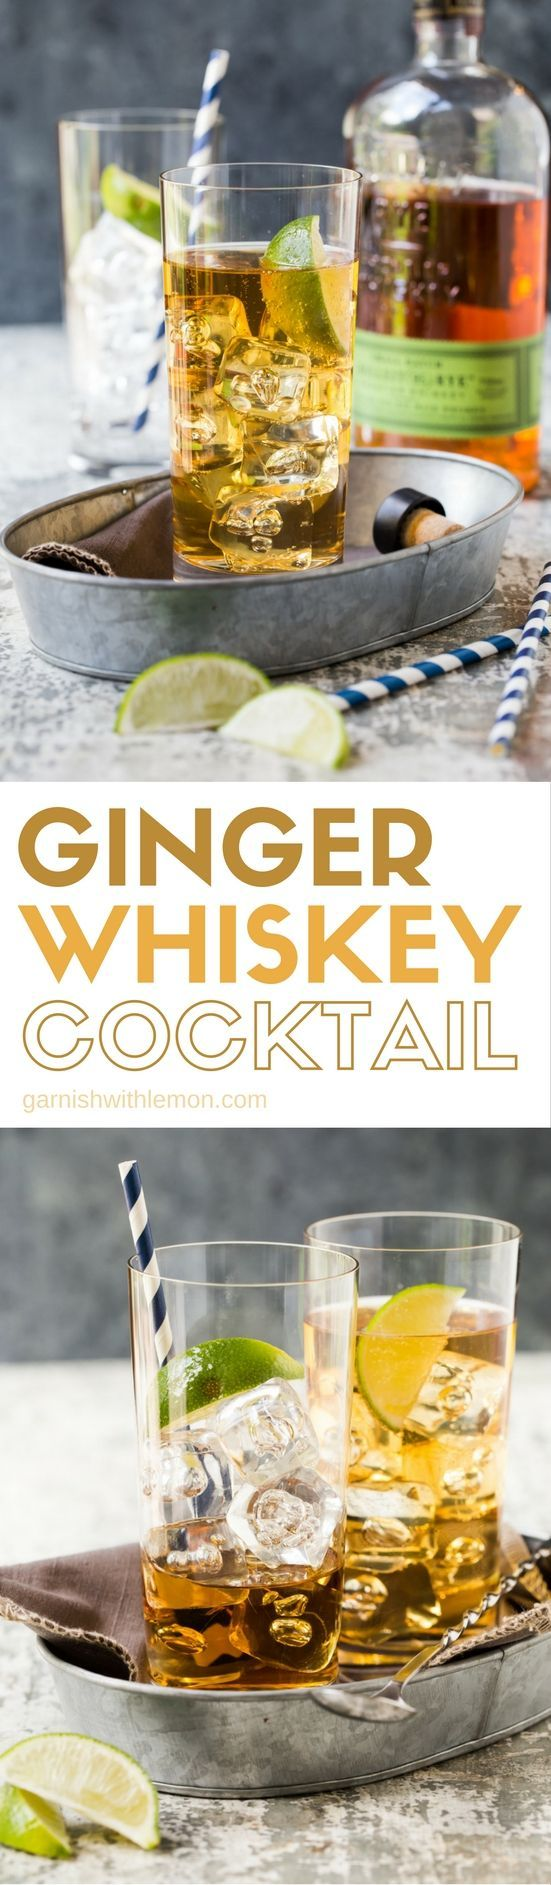 This two ingredient Ginger Whiskey Cocktail recipe is the perfect way to stay warm on those cool fall nights!